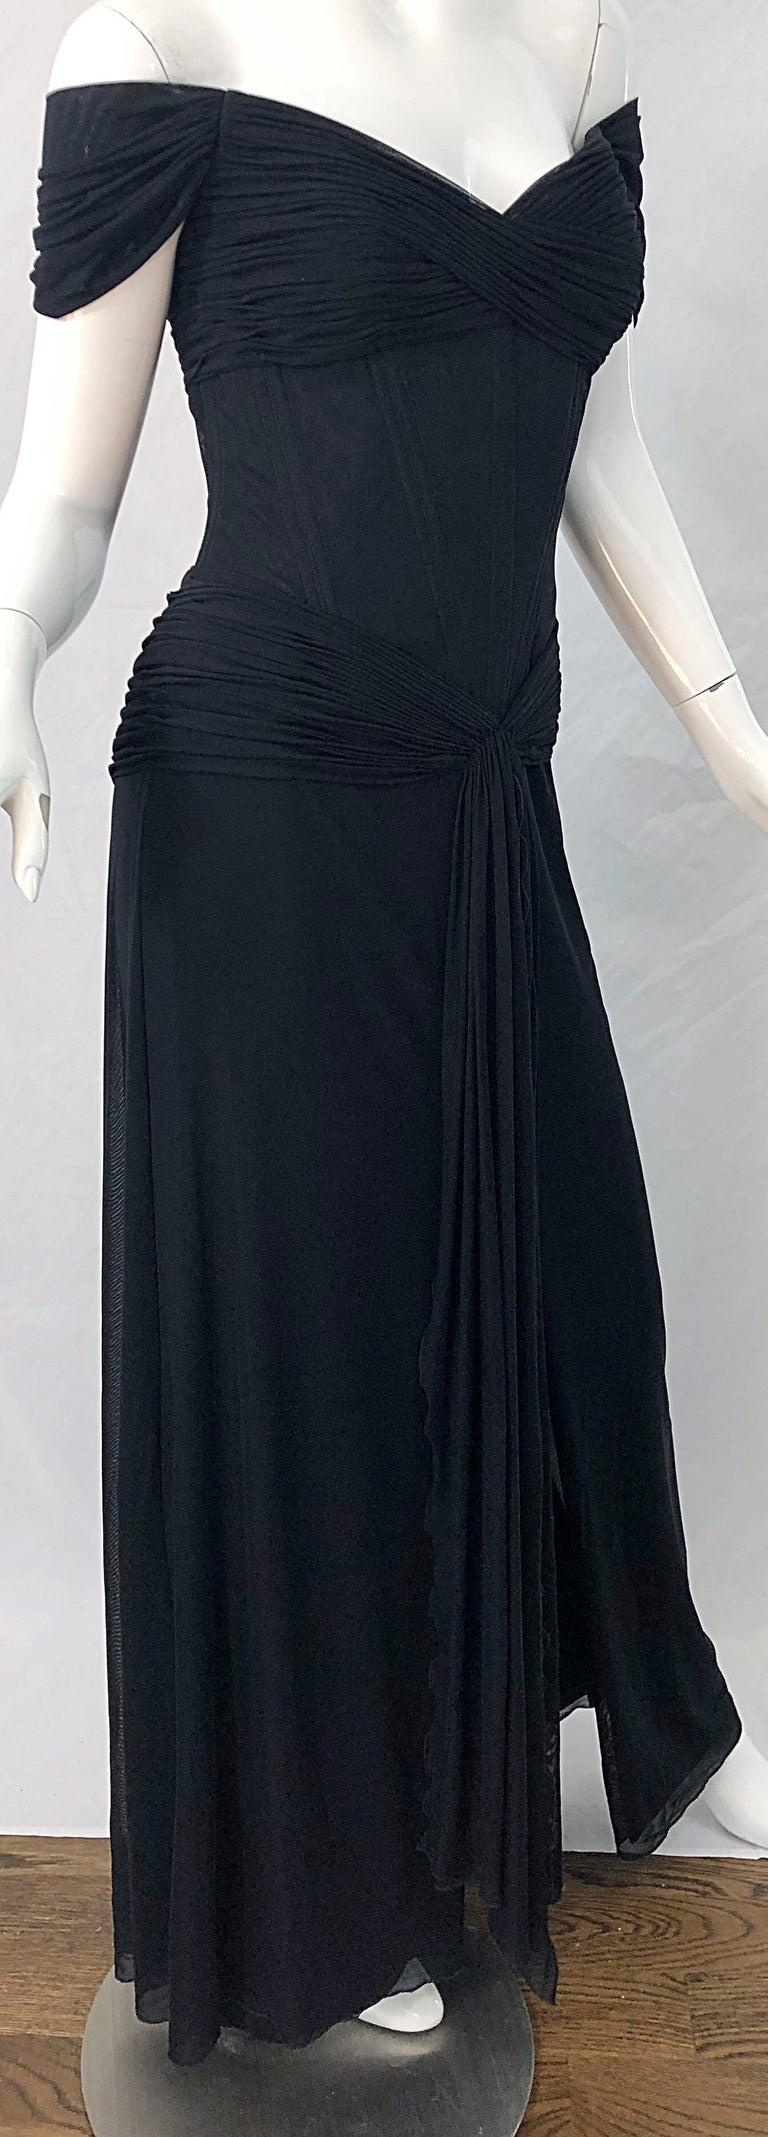 Julia Roberts Pretty Woman Vintage Vicky Tiel Couture Sz 12 Black 1980s Gown For Sale 10